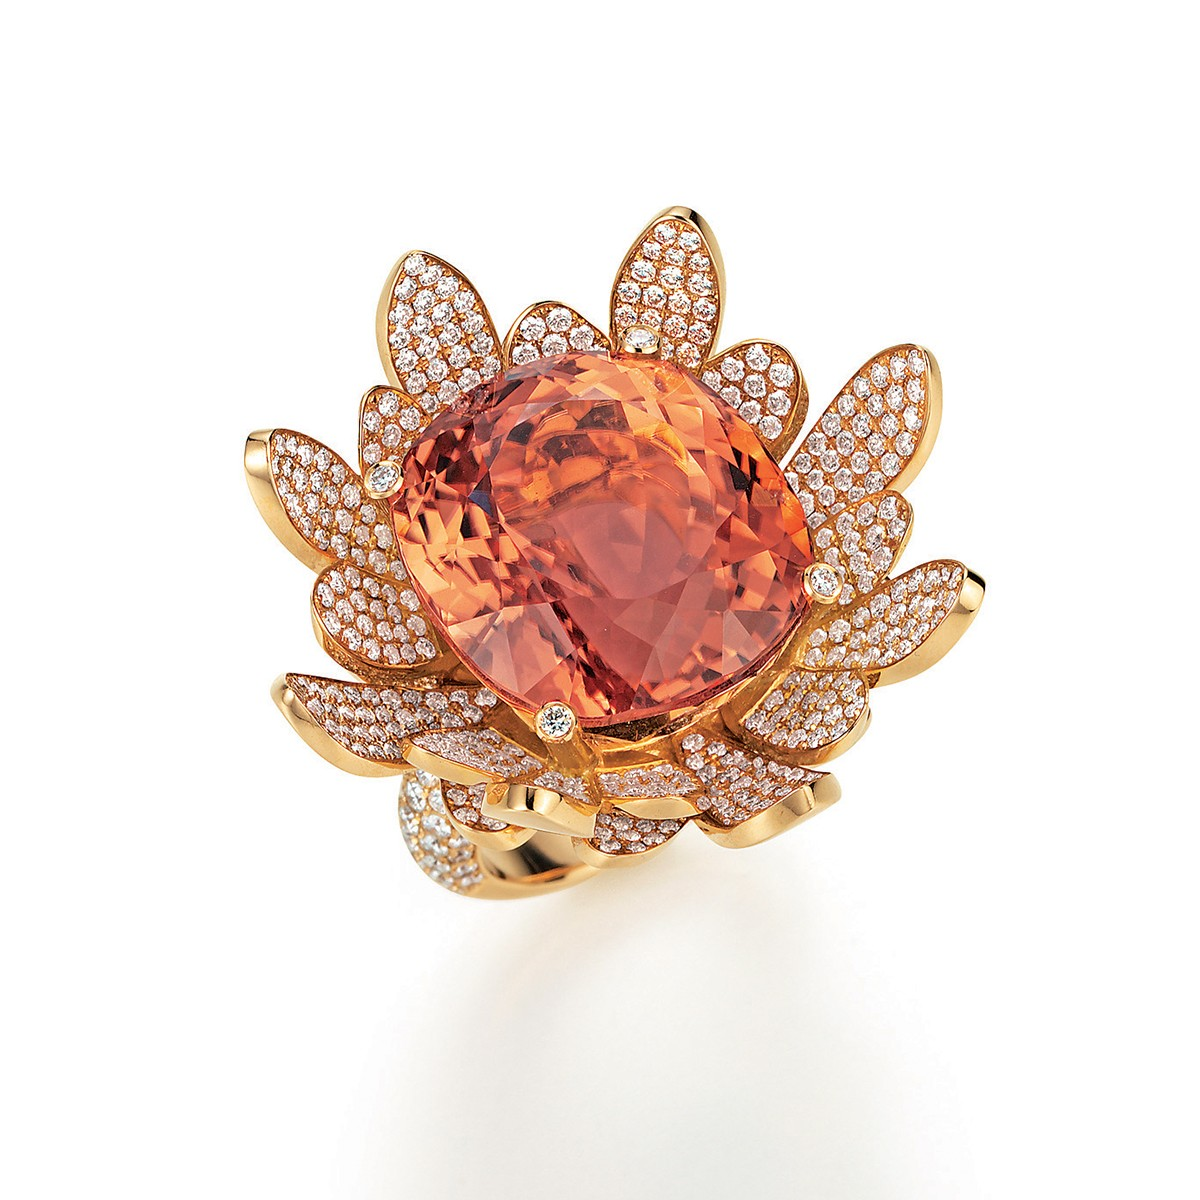 Water-Lilly-Love-Ring-Preis-21800